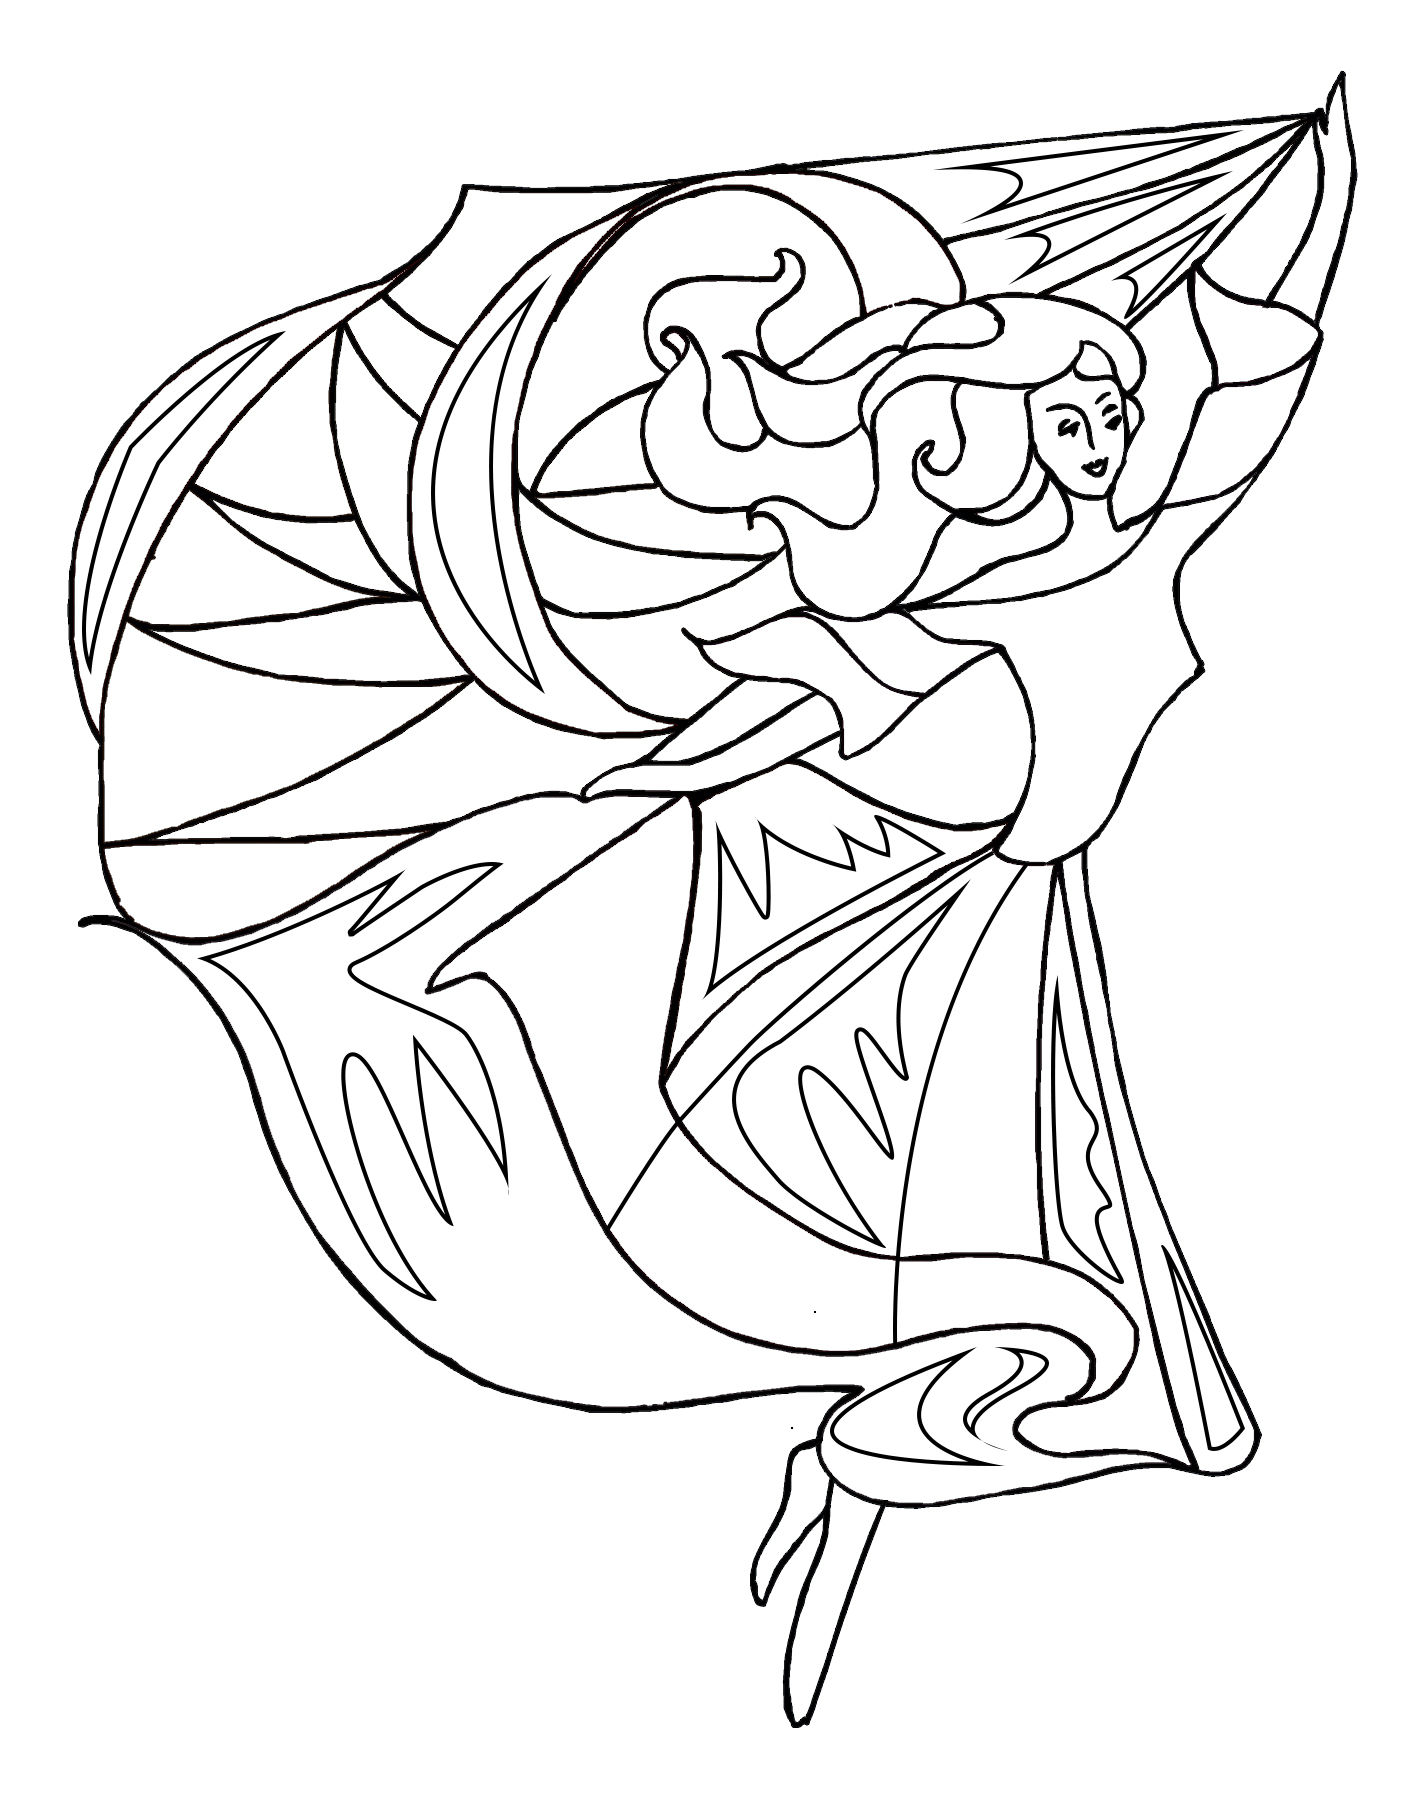 dance coloring page with scarfs